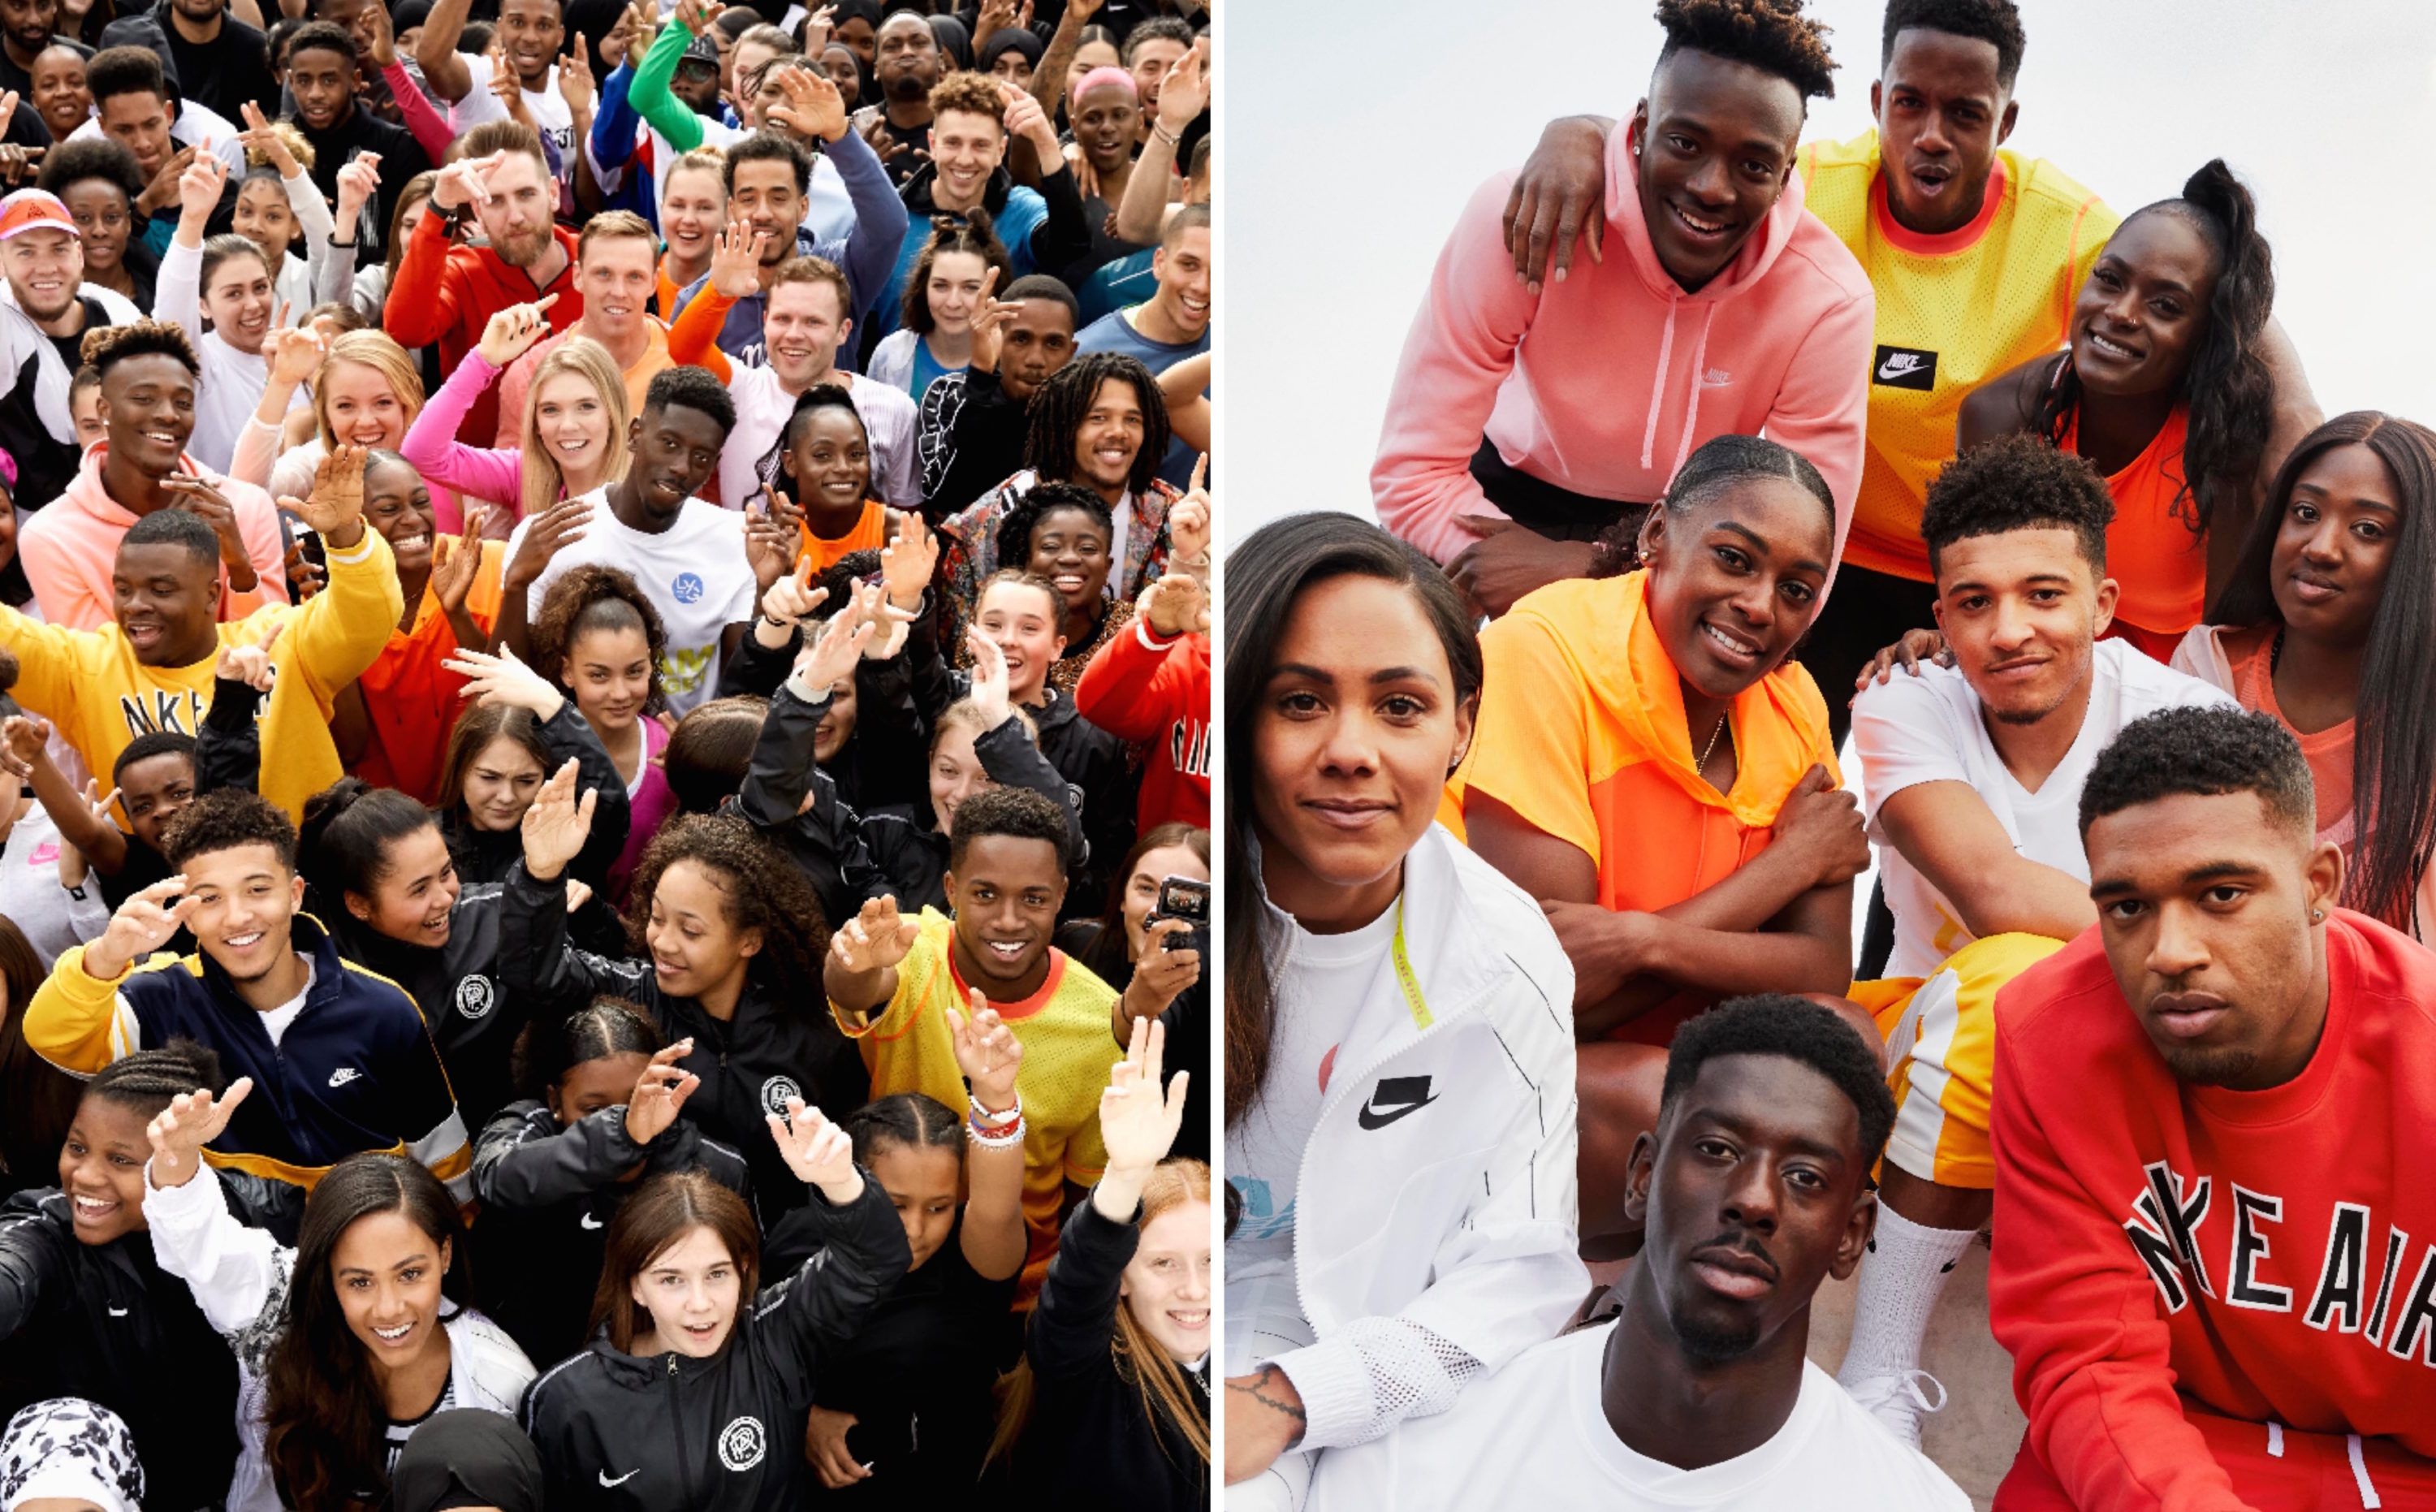 nike-youth-games